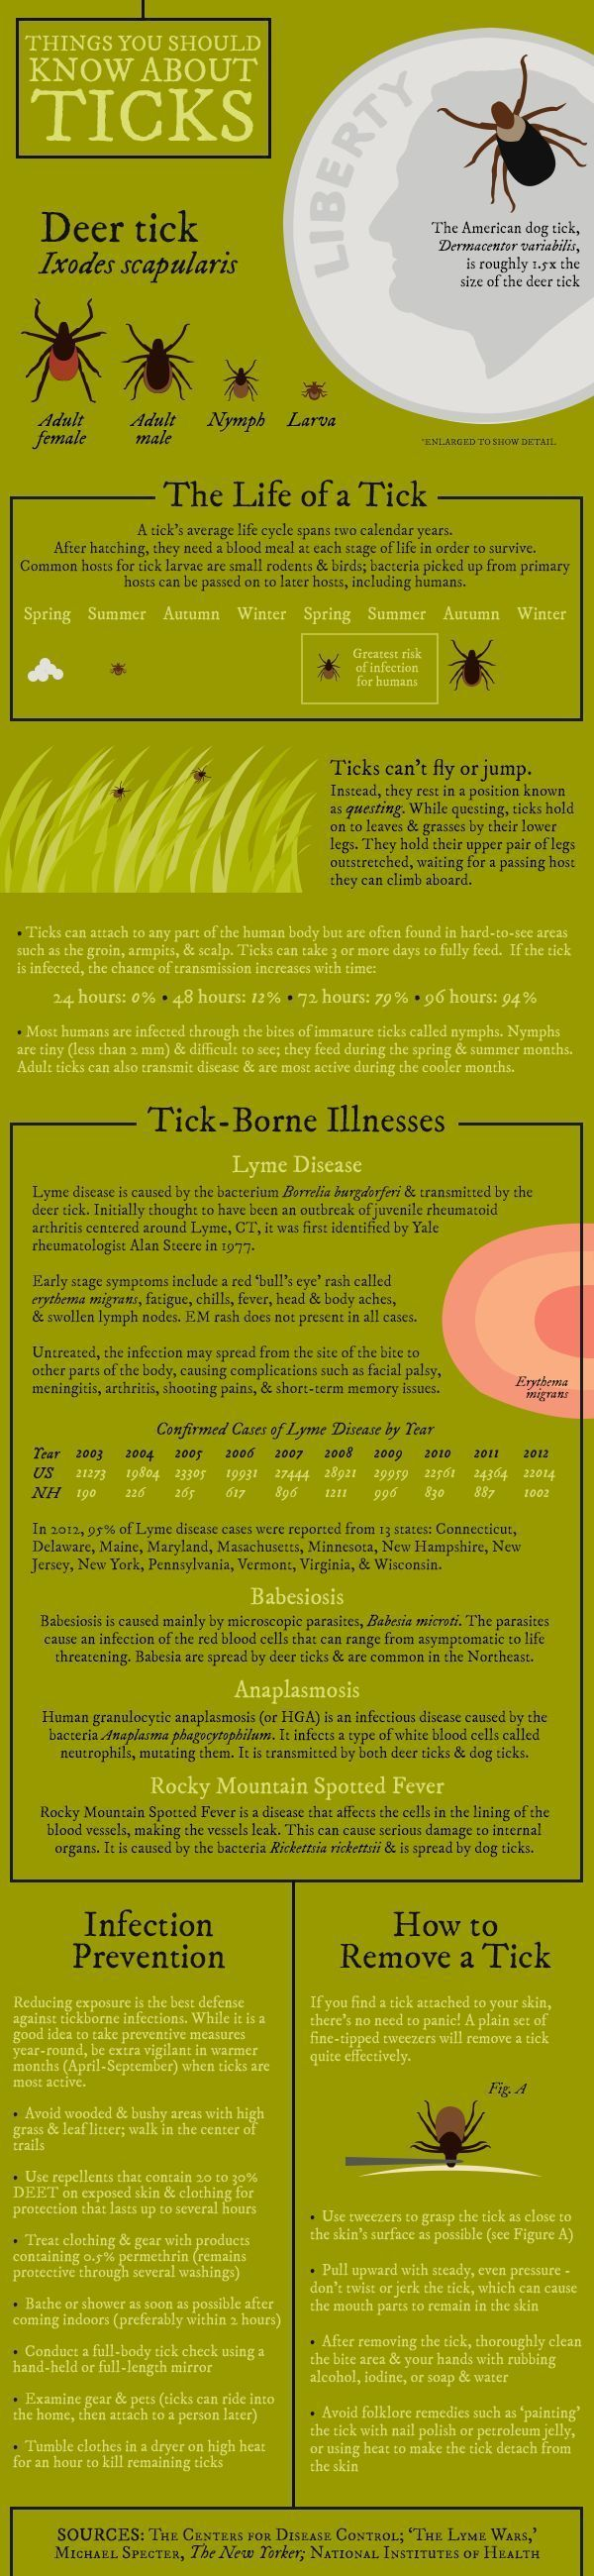 Things You Should Know About Ticks [Infographic] | New Hampshire Public Radio #huntinginfographic